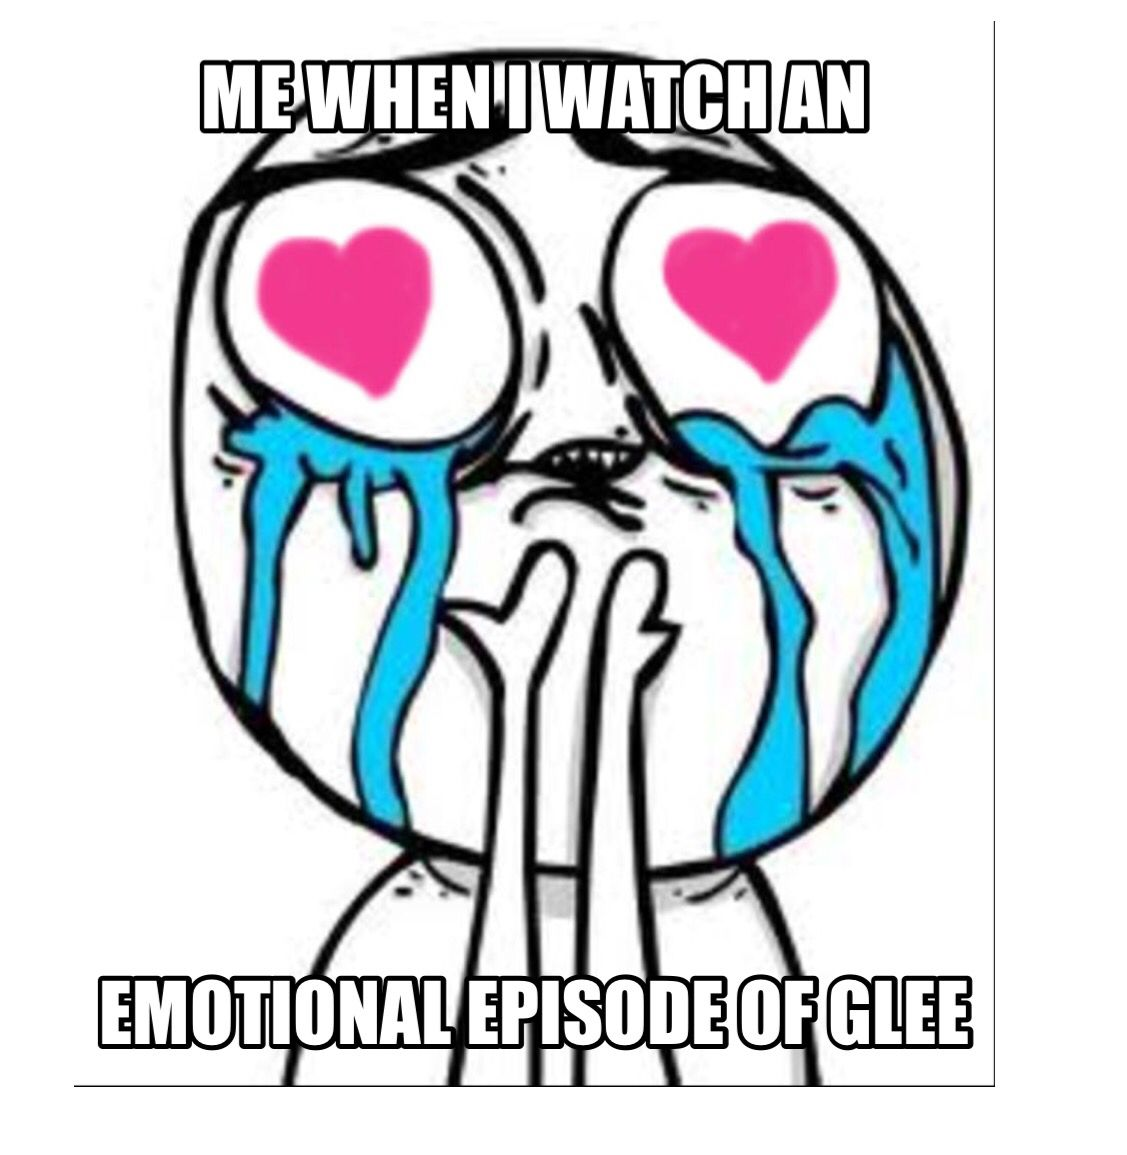 Glee🎼 image by Jordan Koo Crying meme, Adventures in odyssey